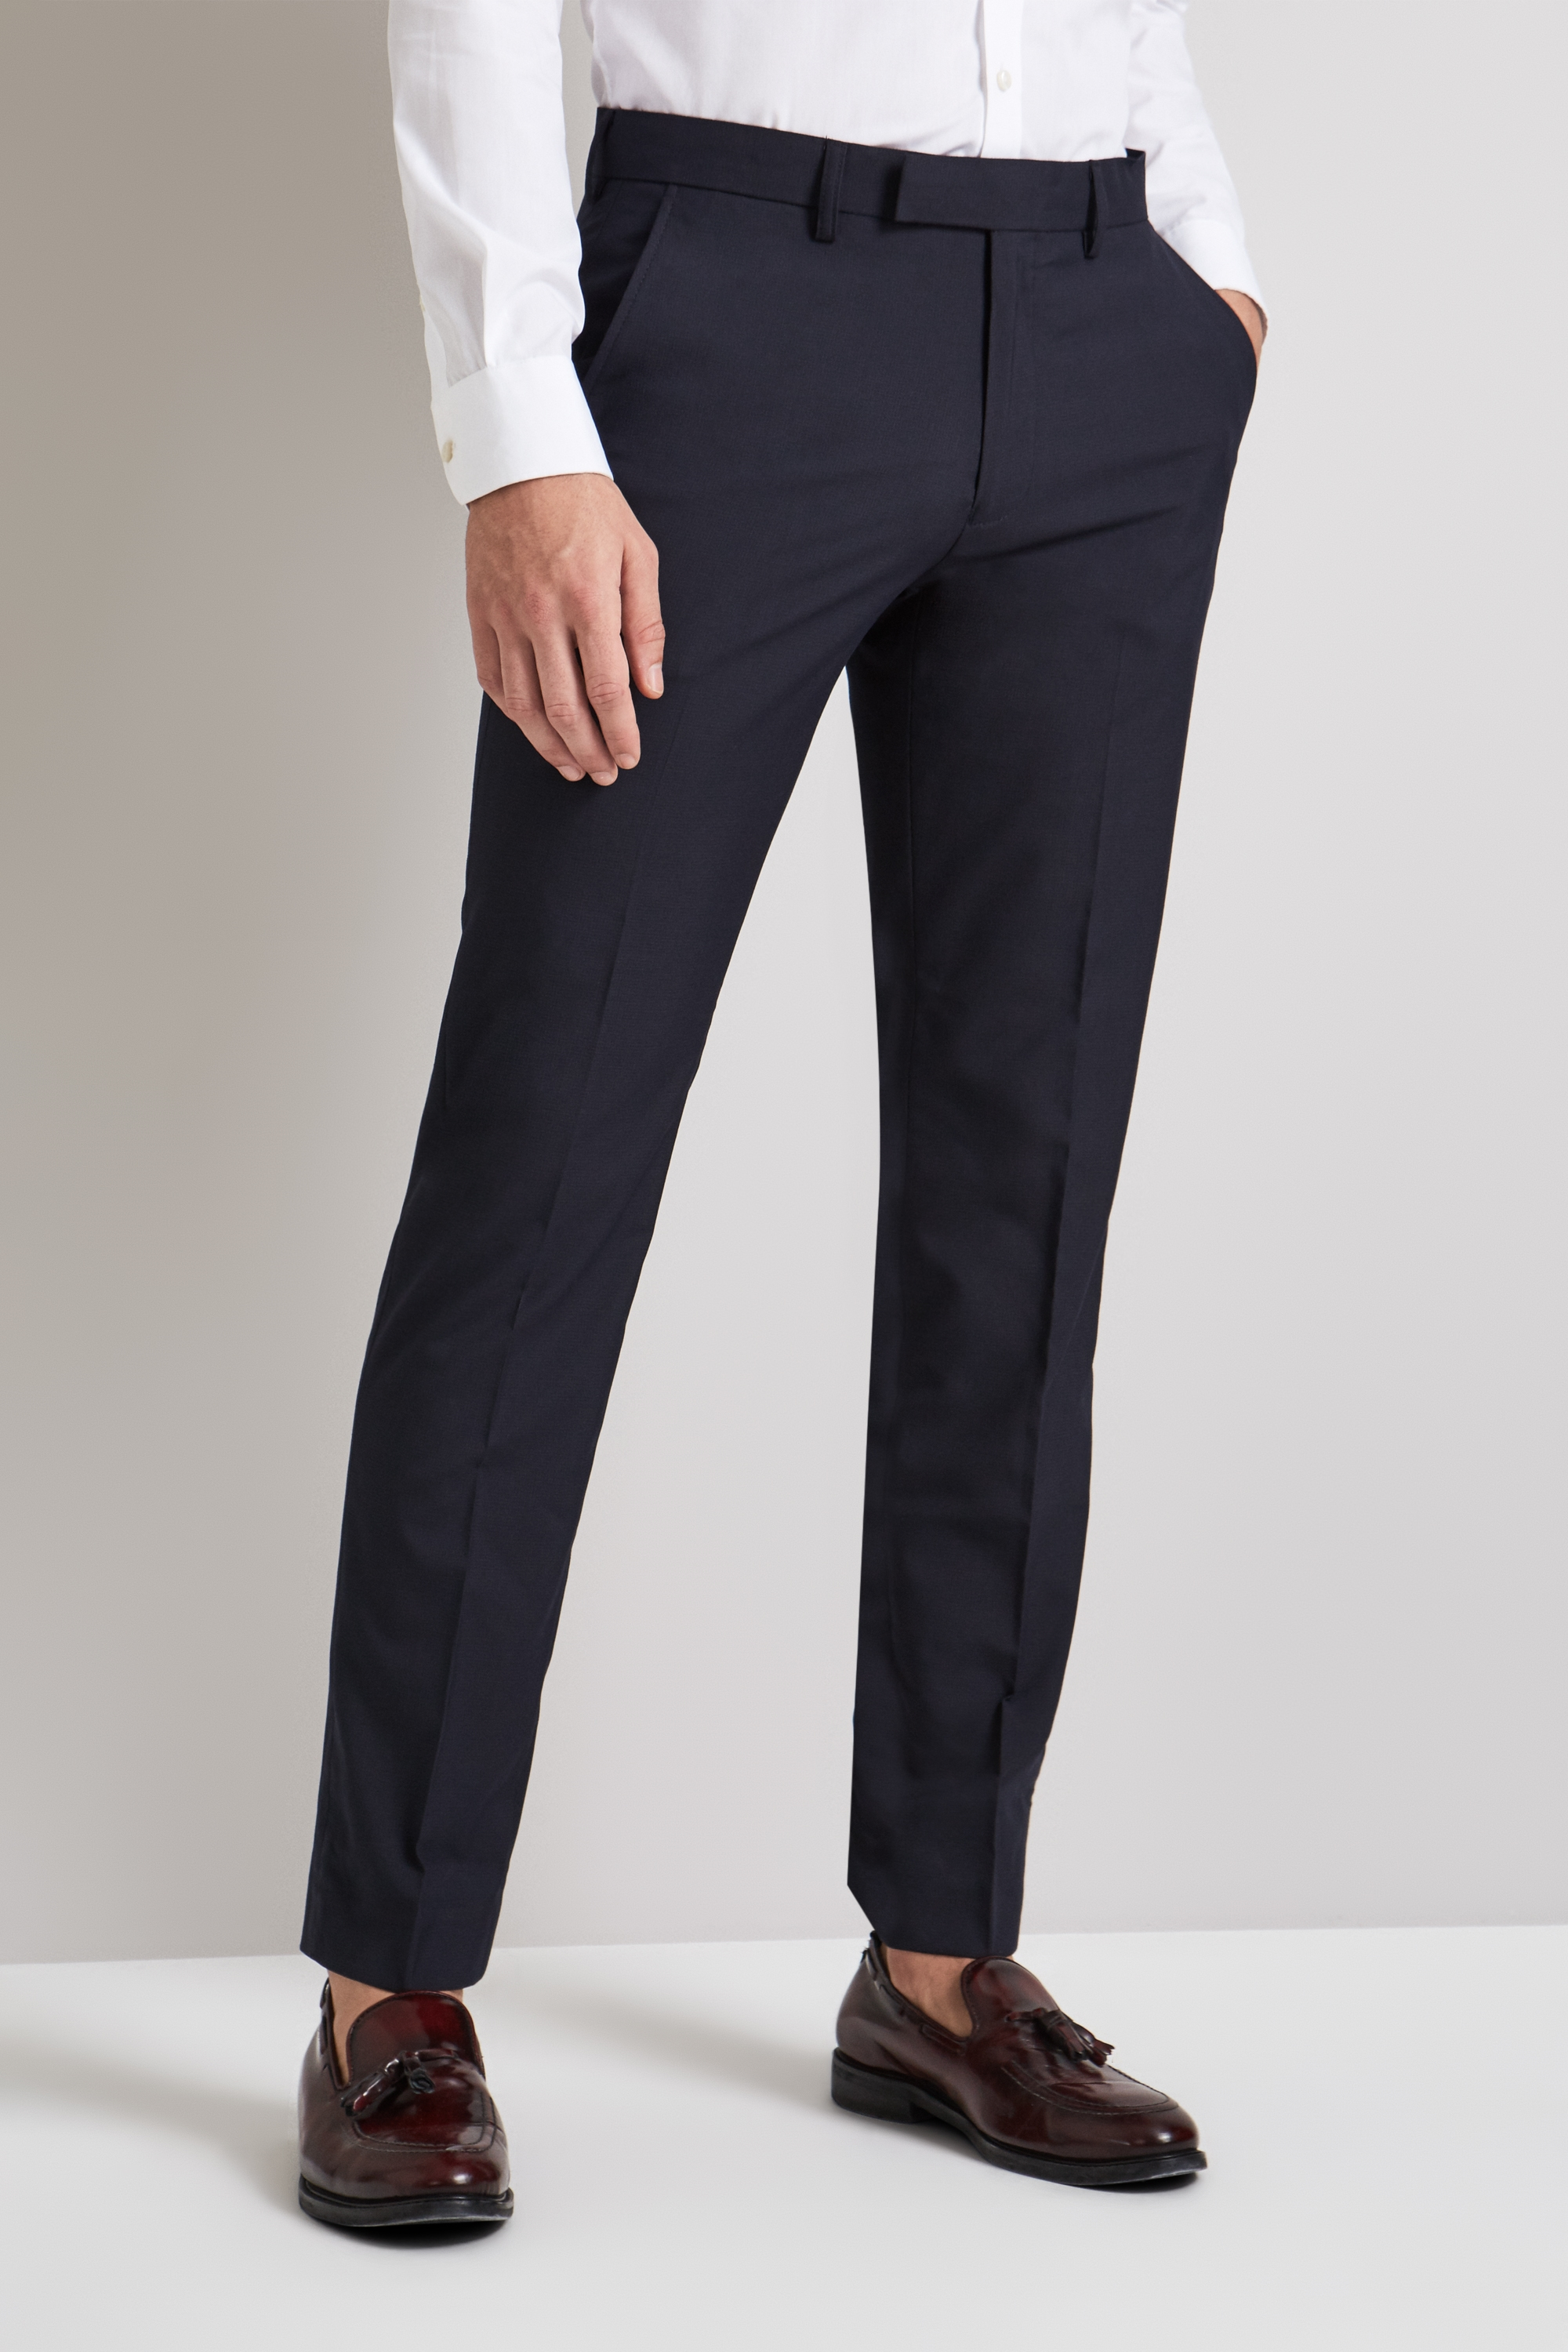 253127f3e1 Details about Moss London Mens Suit Trousers Slim Fit Navy Blue Micro Check  Formal Pants